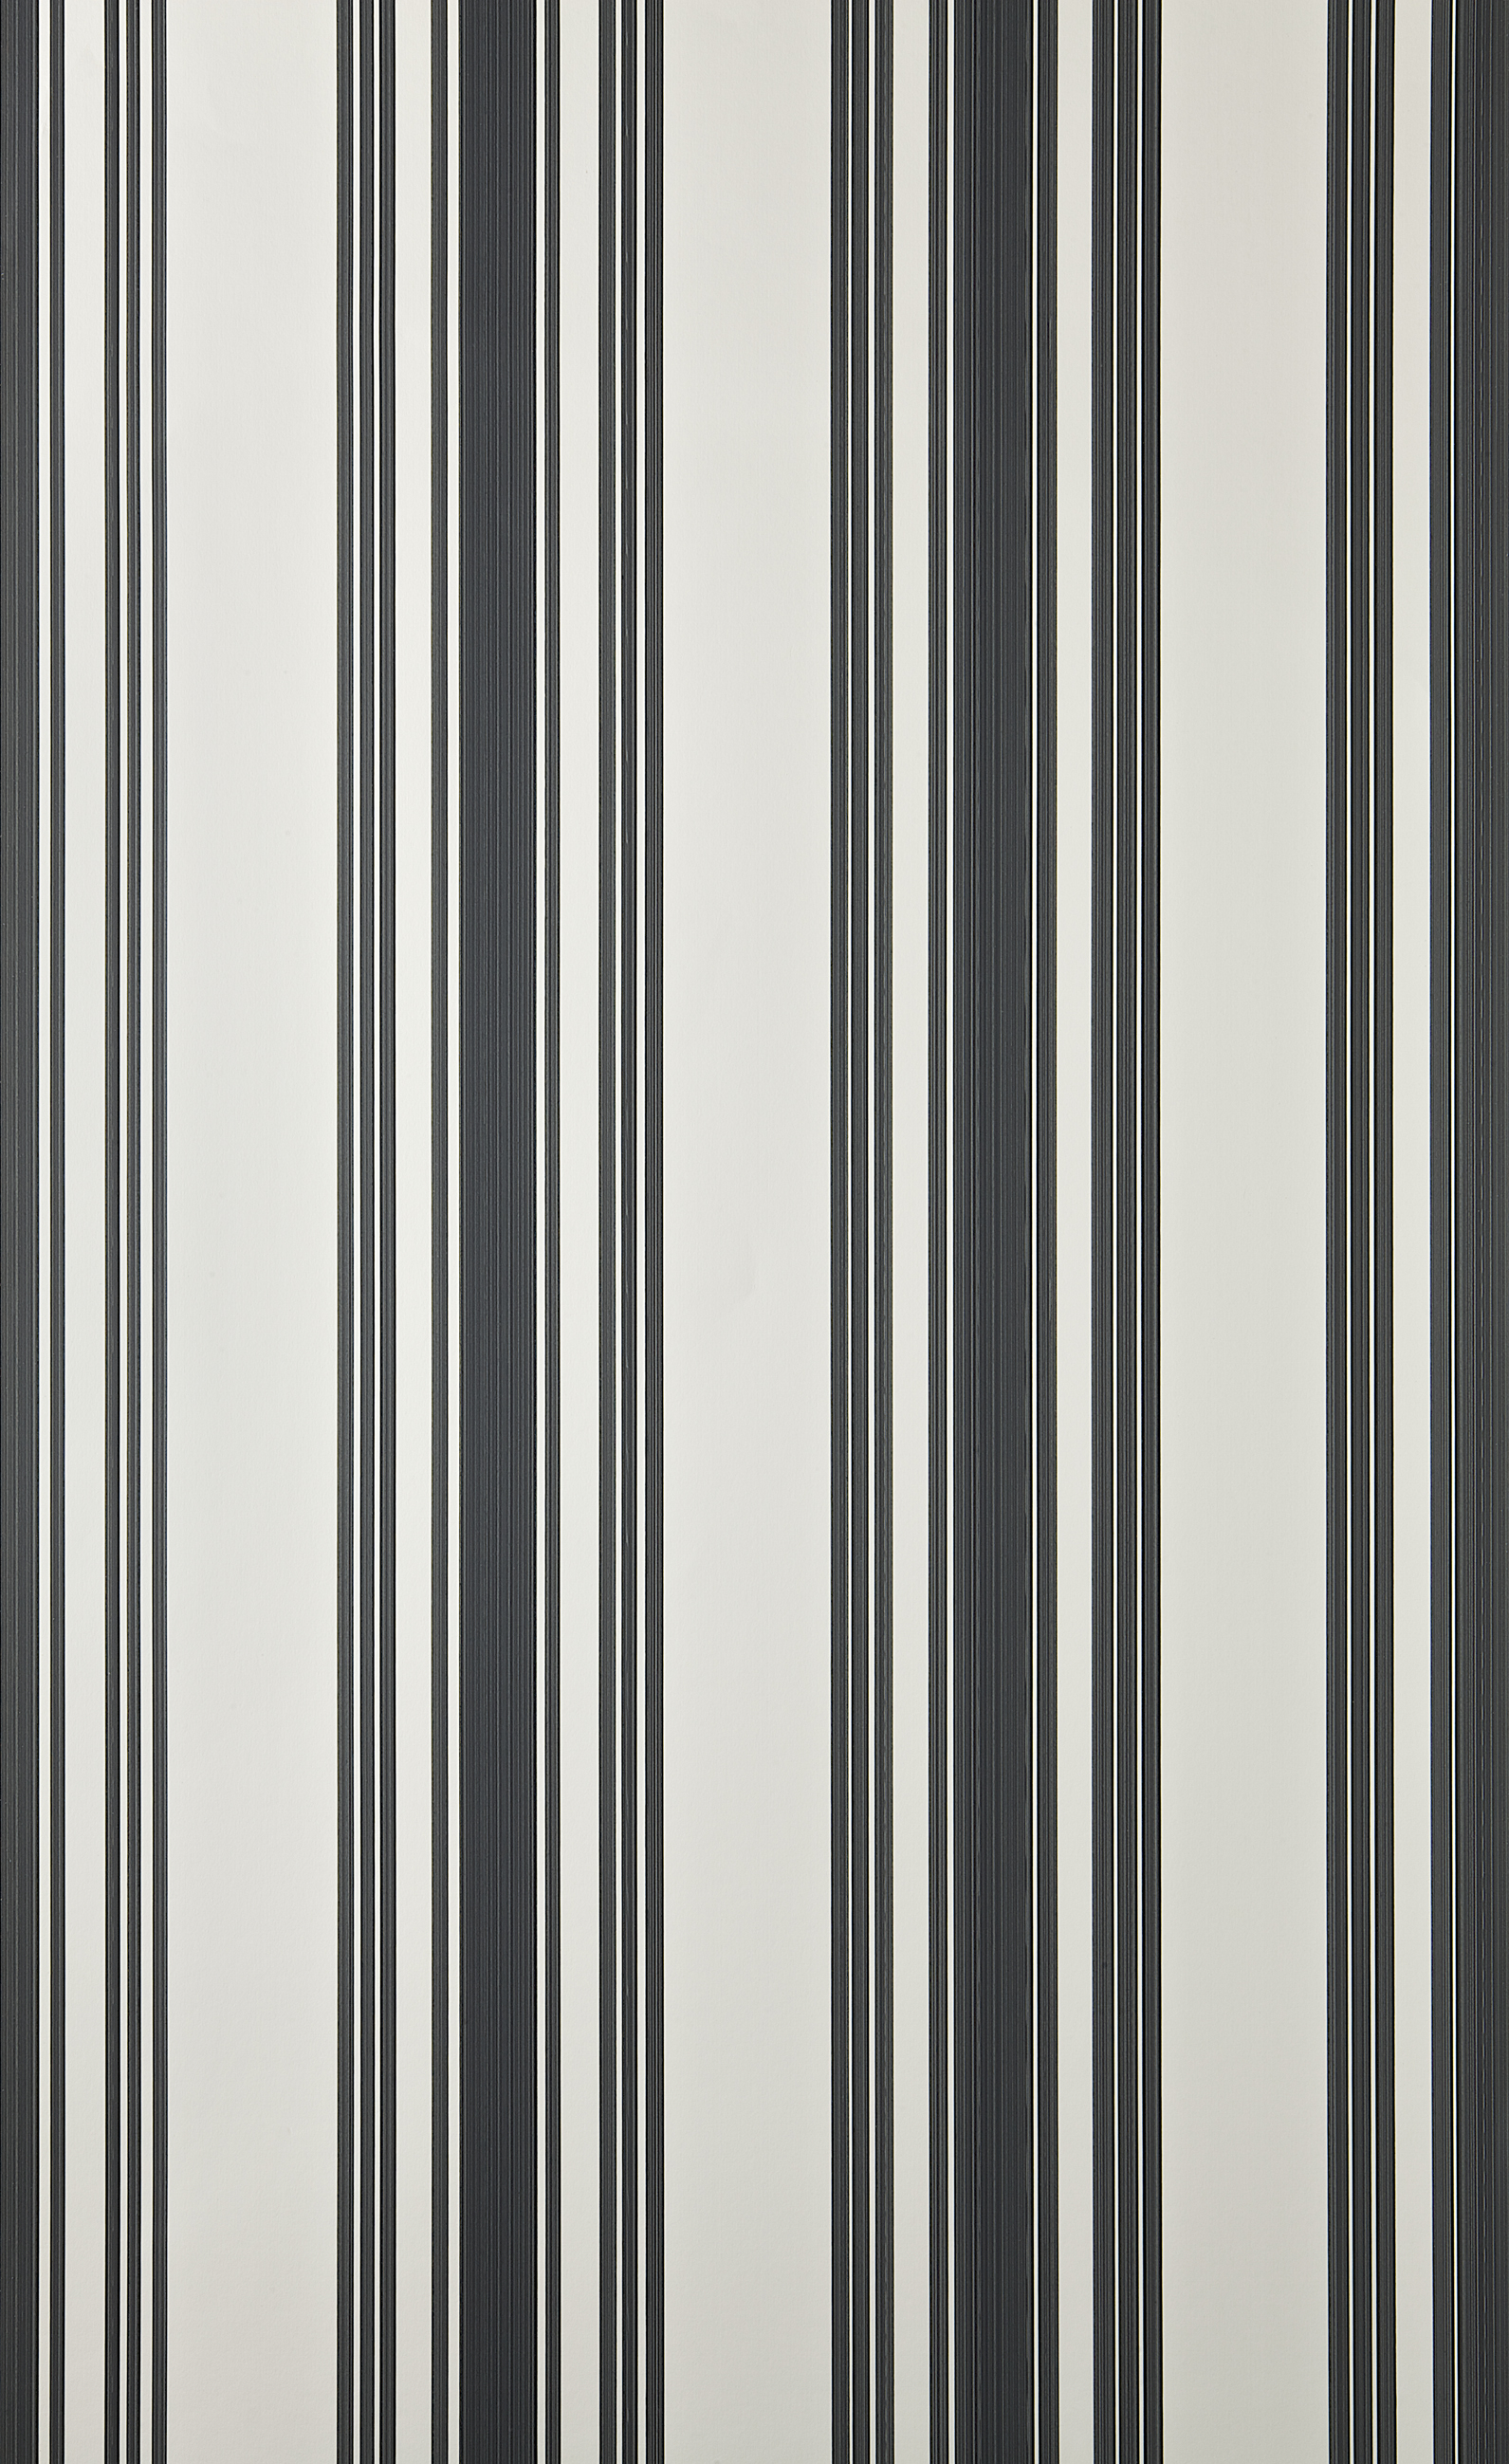 Tented Stripe 1388 $195 Per Roll  Order Now